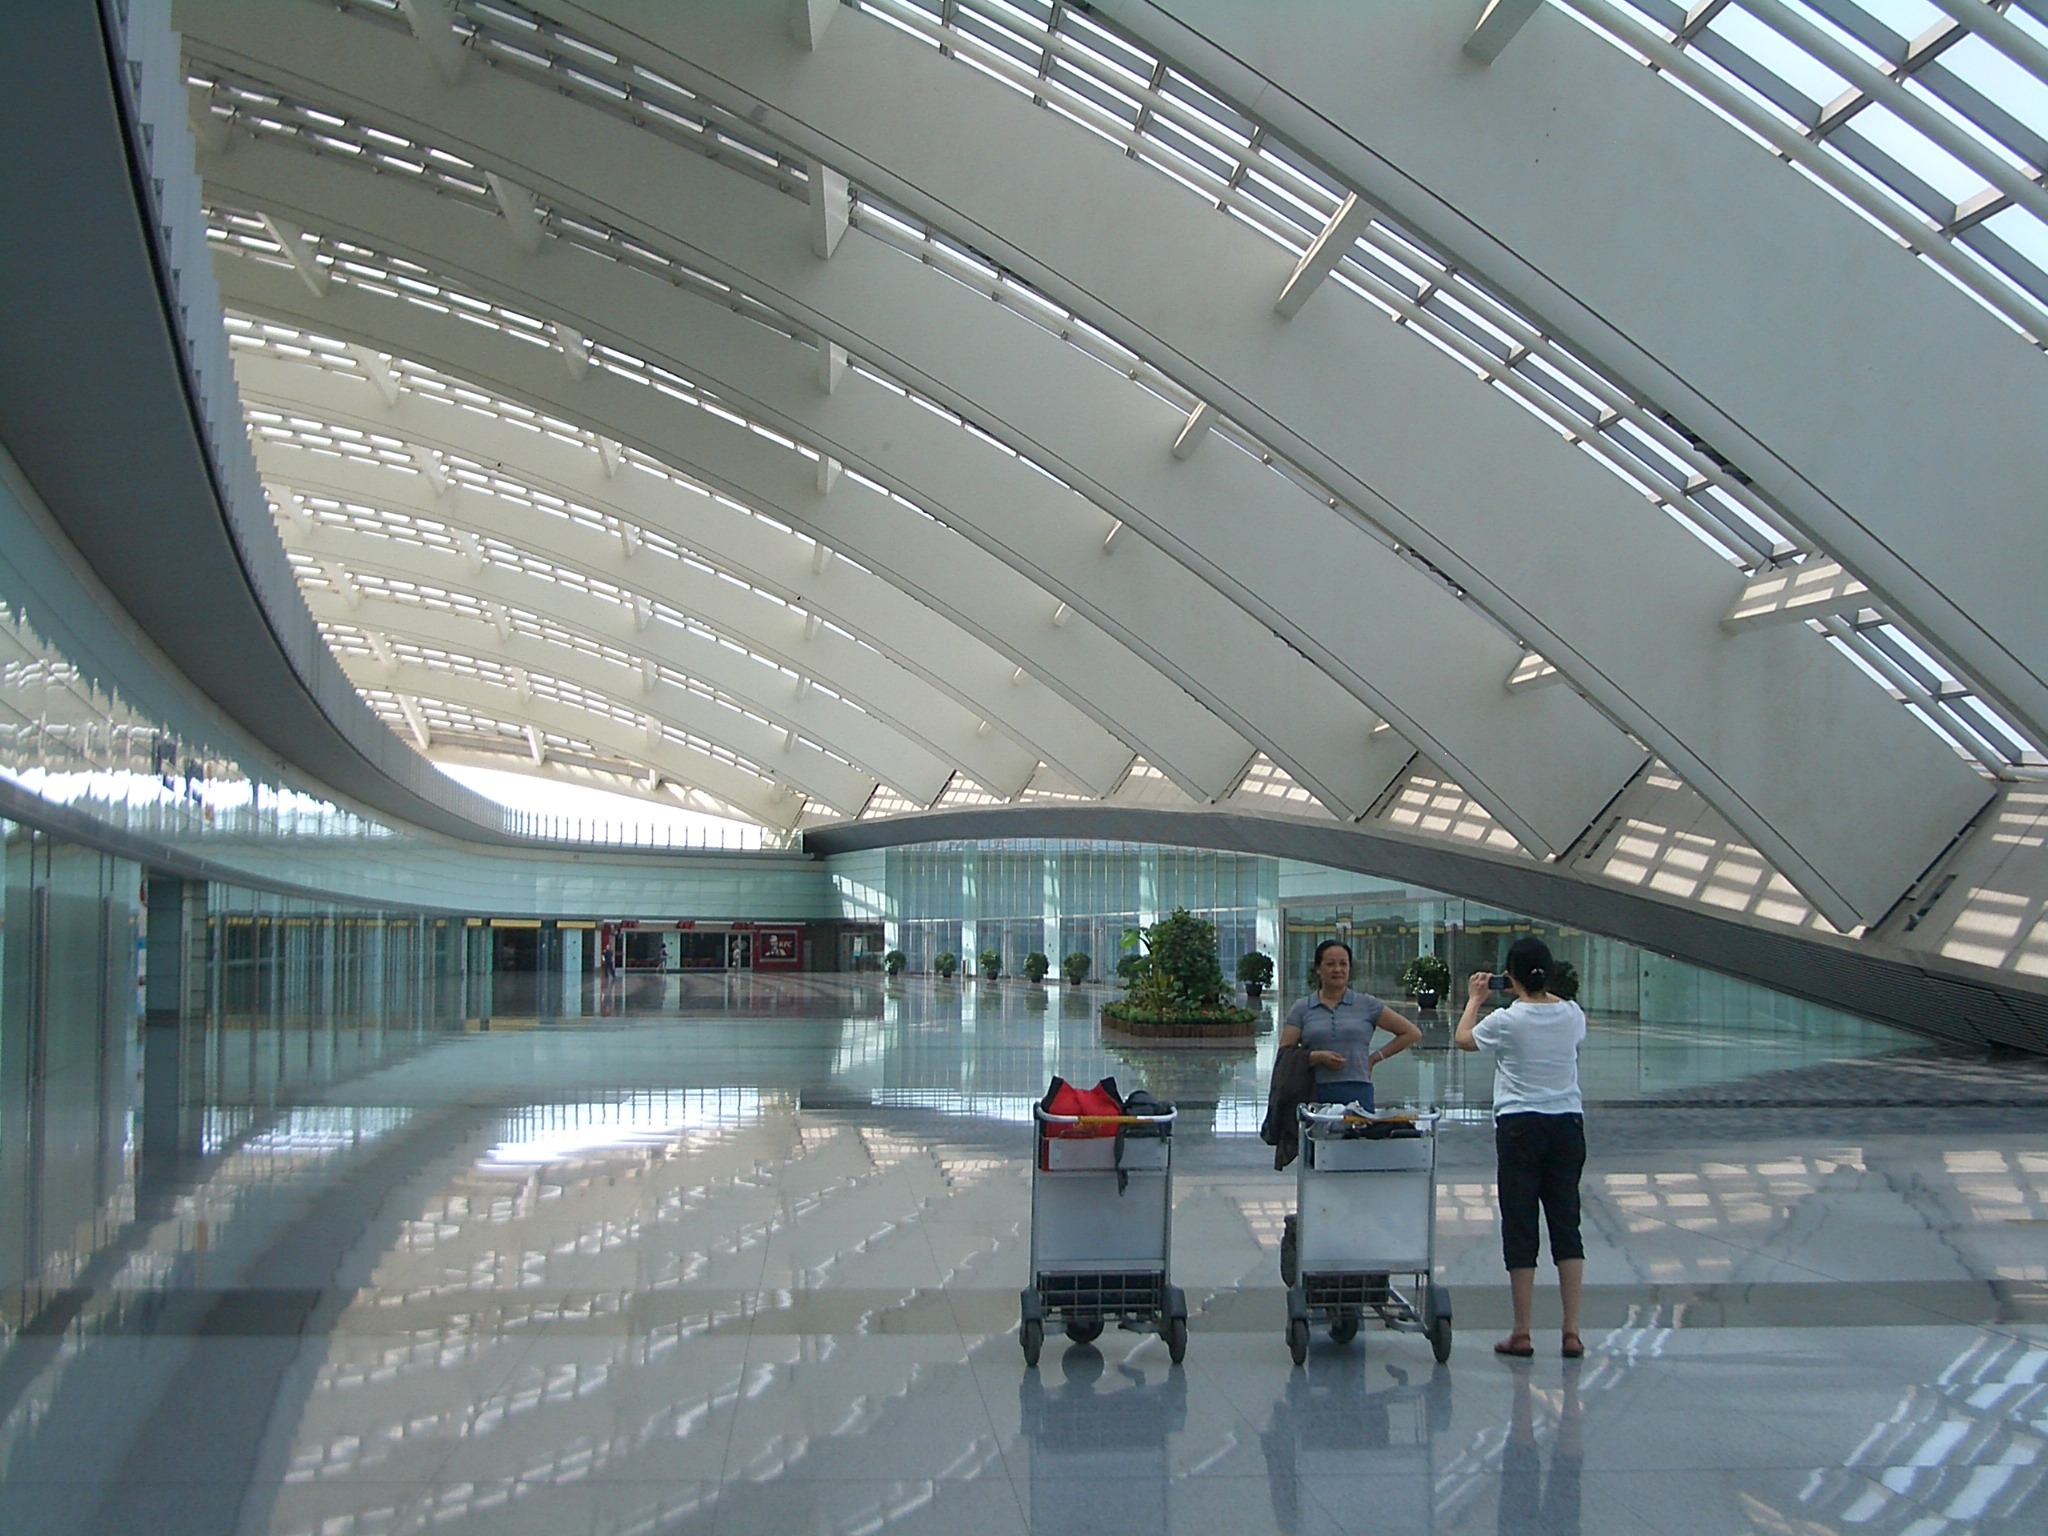 Free Renovation Software File Vm Beijing Airport Hallways 4350 Jpg Wikimedia